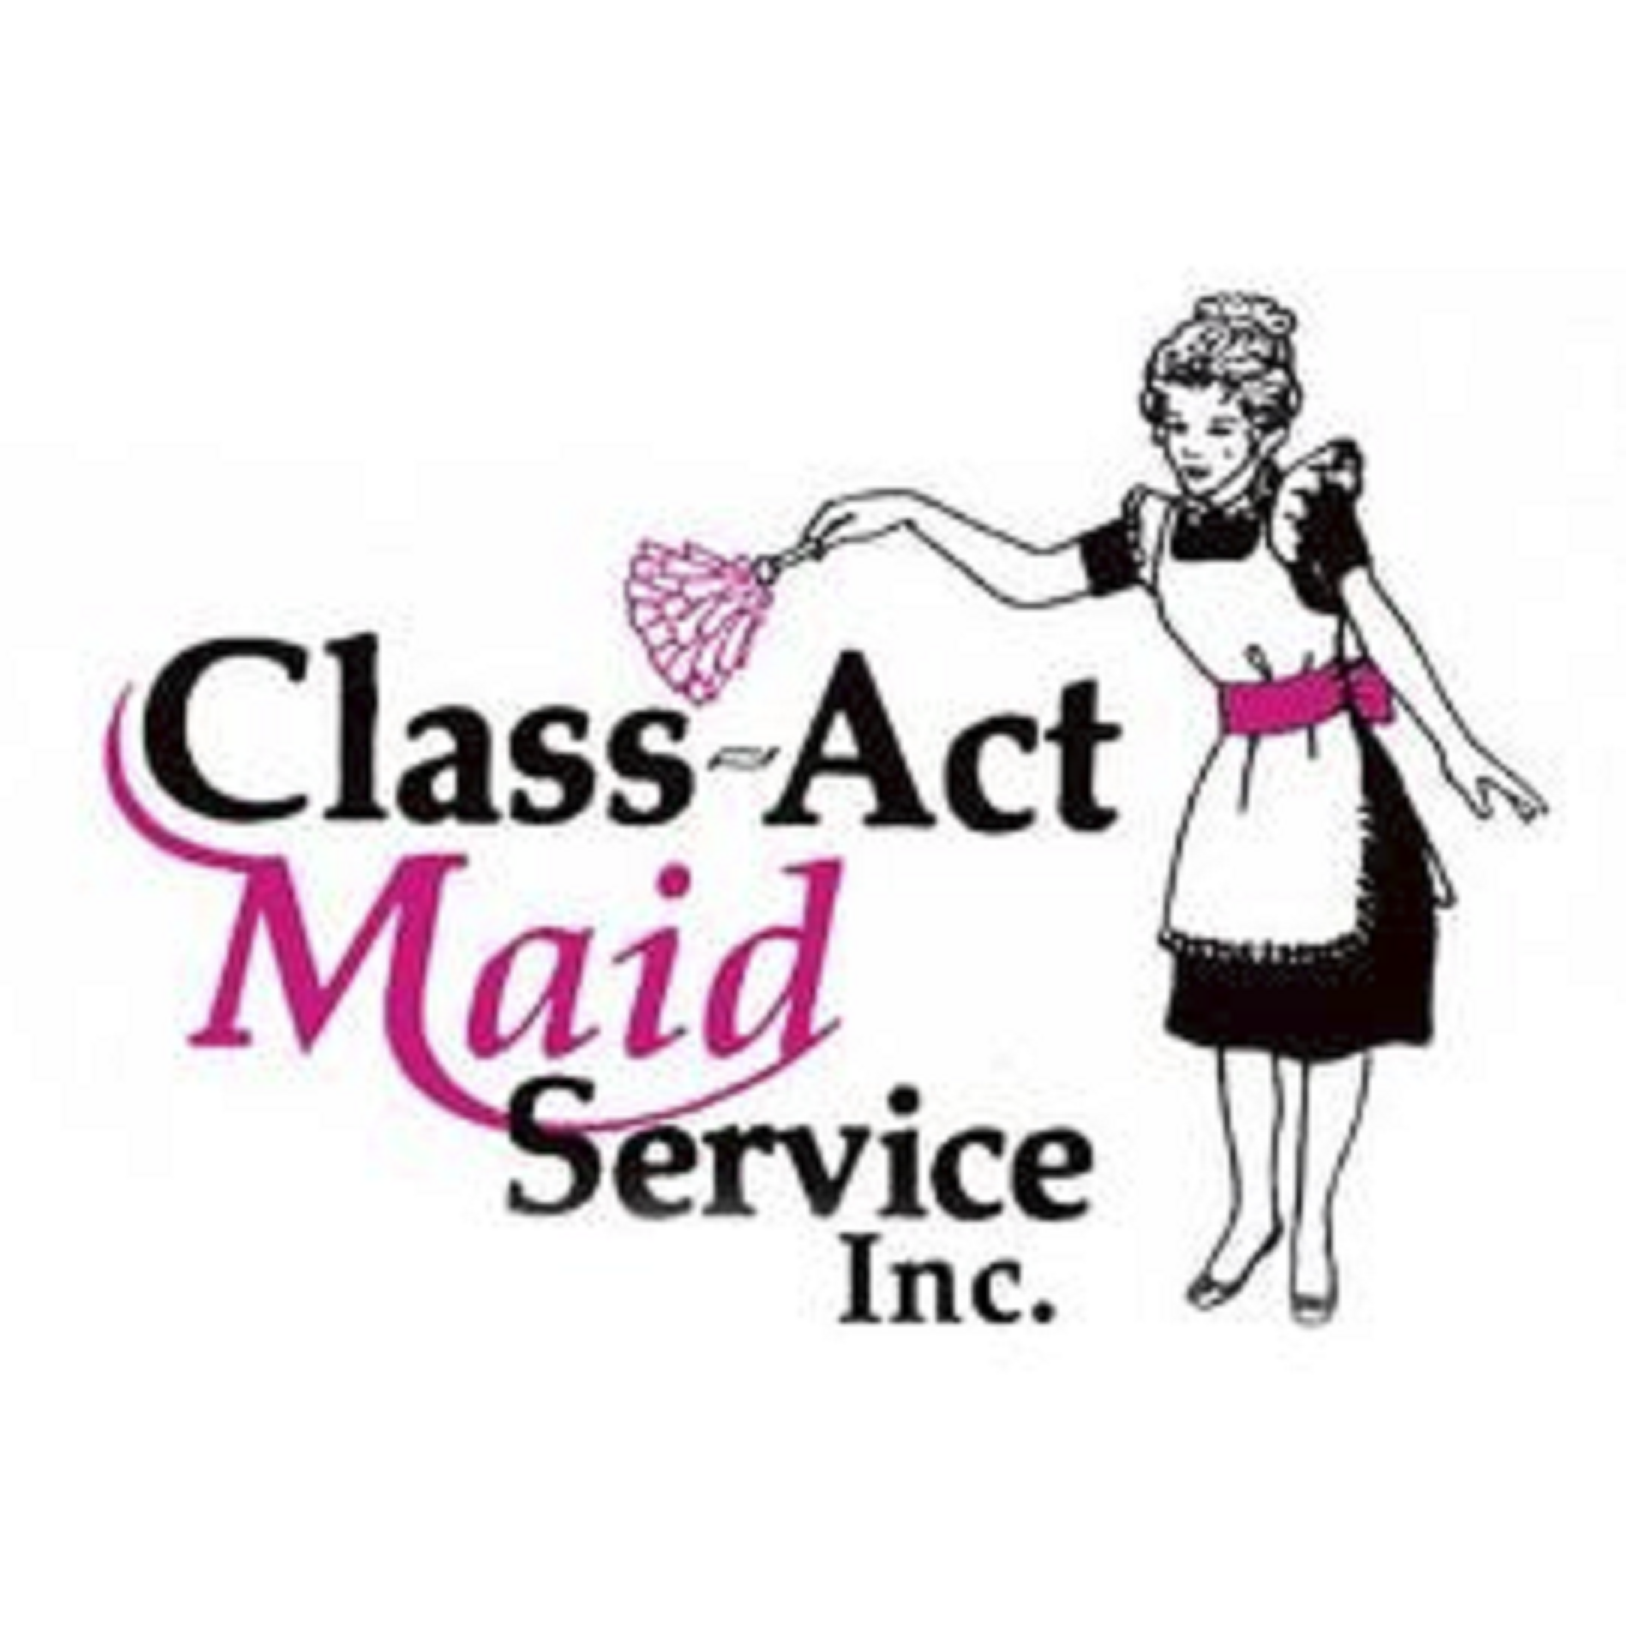 Class Act Maid Service Inc. - Raleigh, NC 27604 - (919)241-7233 | ShowMeLocal.com